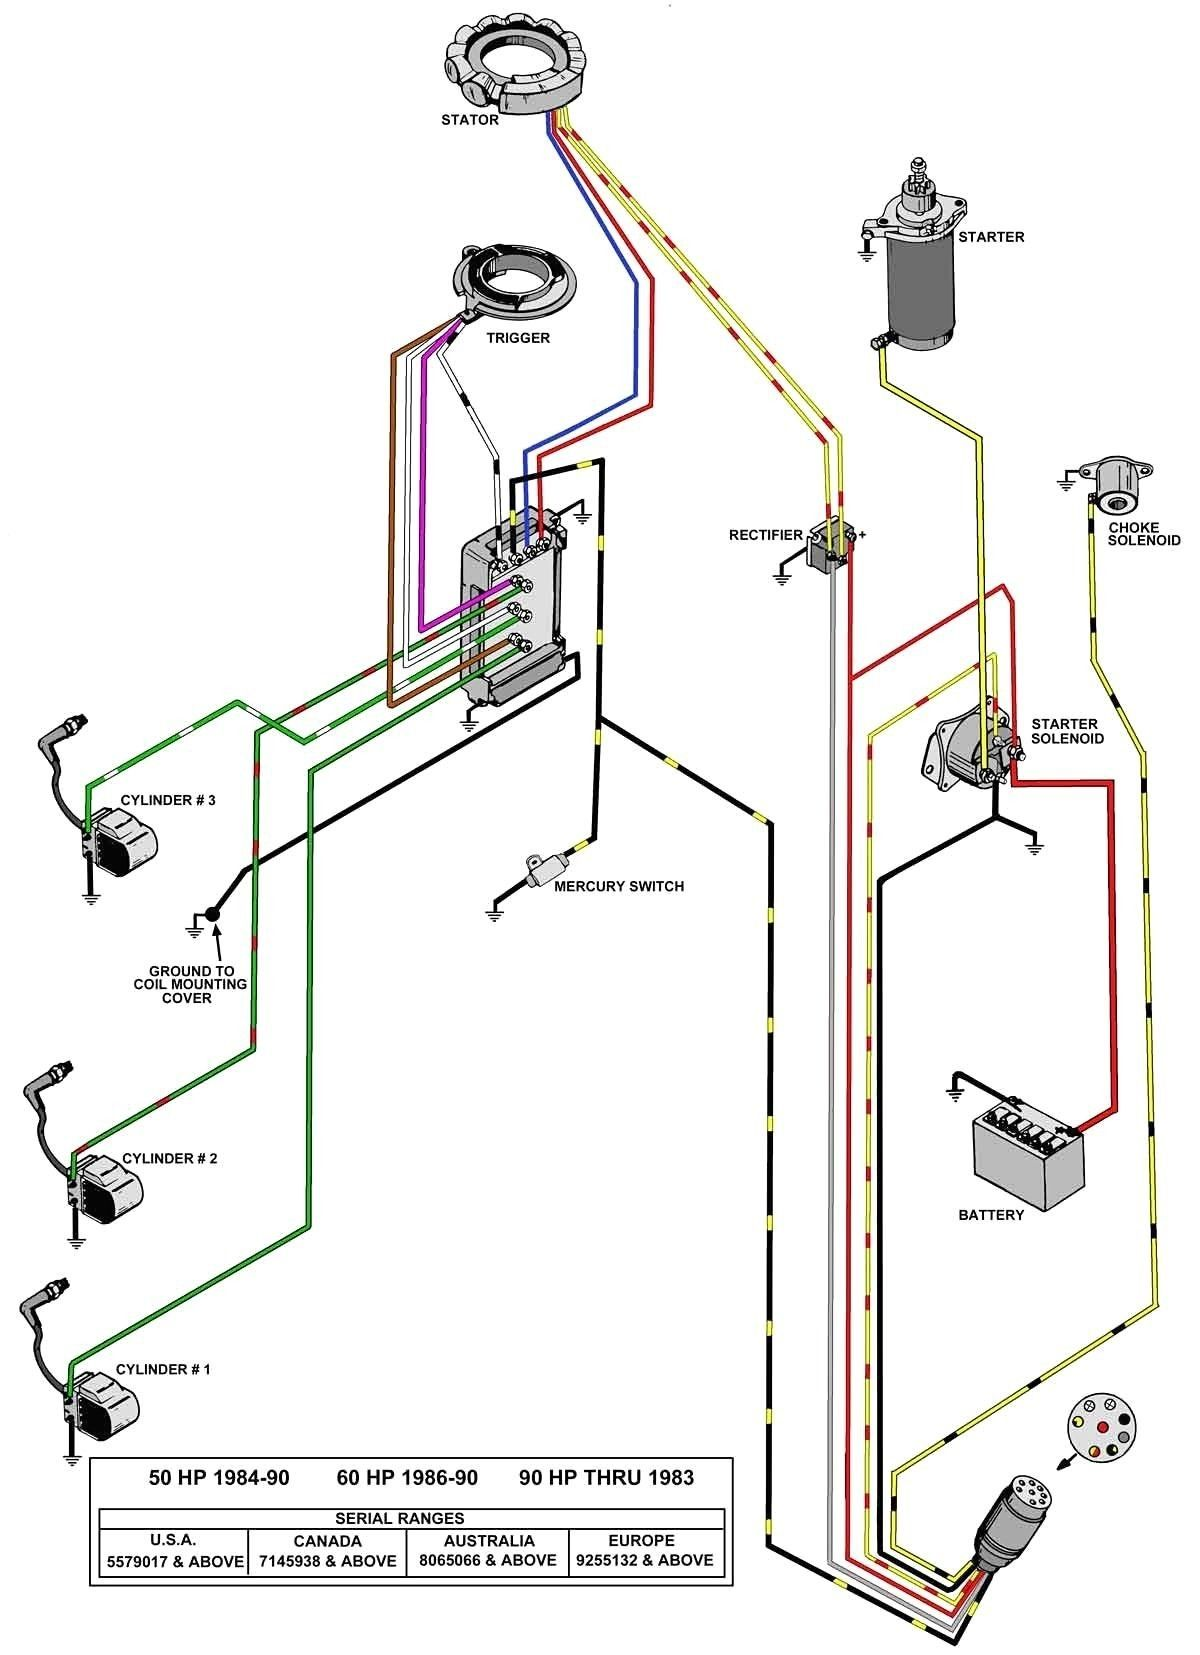 Key Switch Wire Diagram For A Mercury Outboaed With Chock